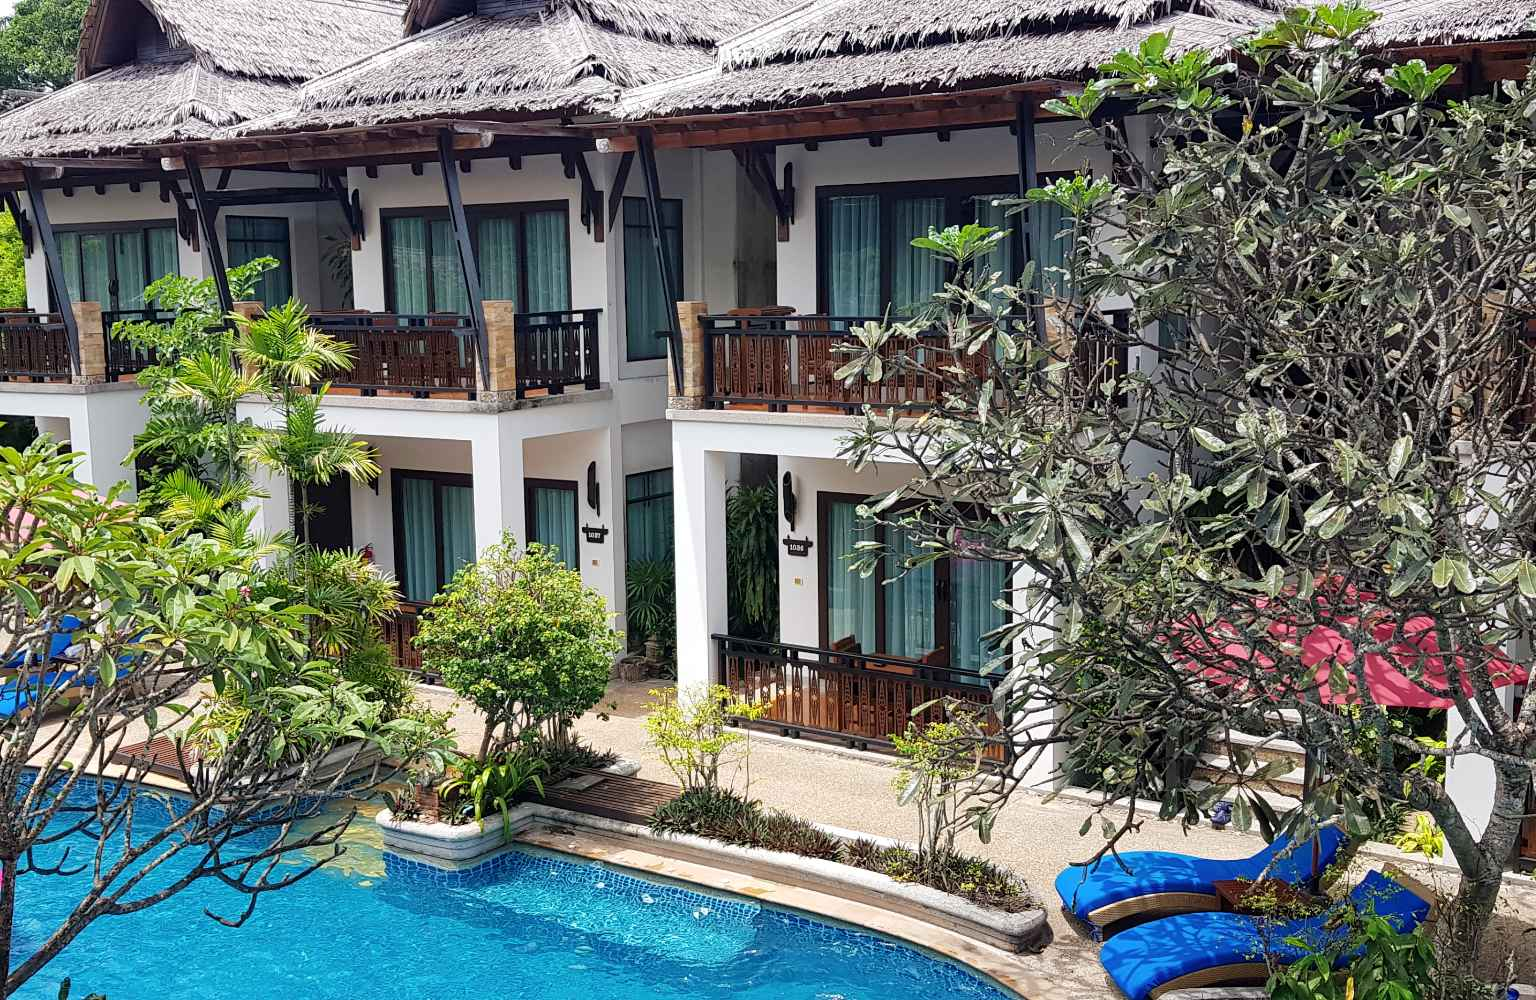 Deluxe Pool Villa, Railay Village Resort Krabi